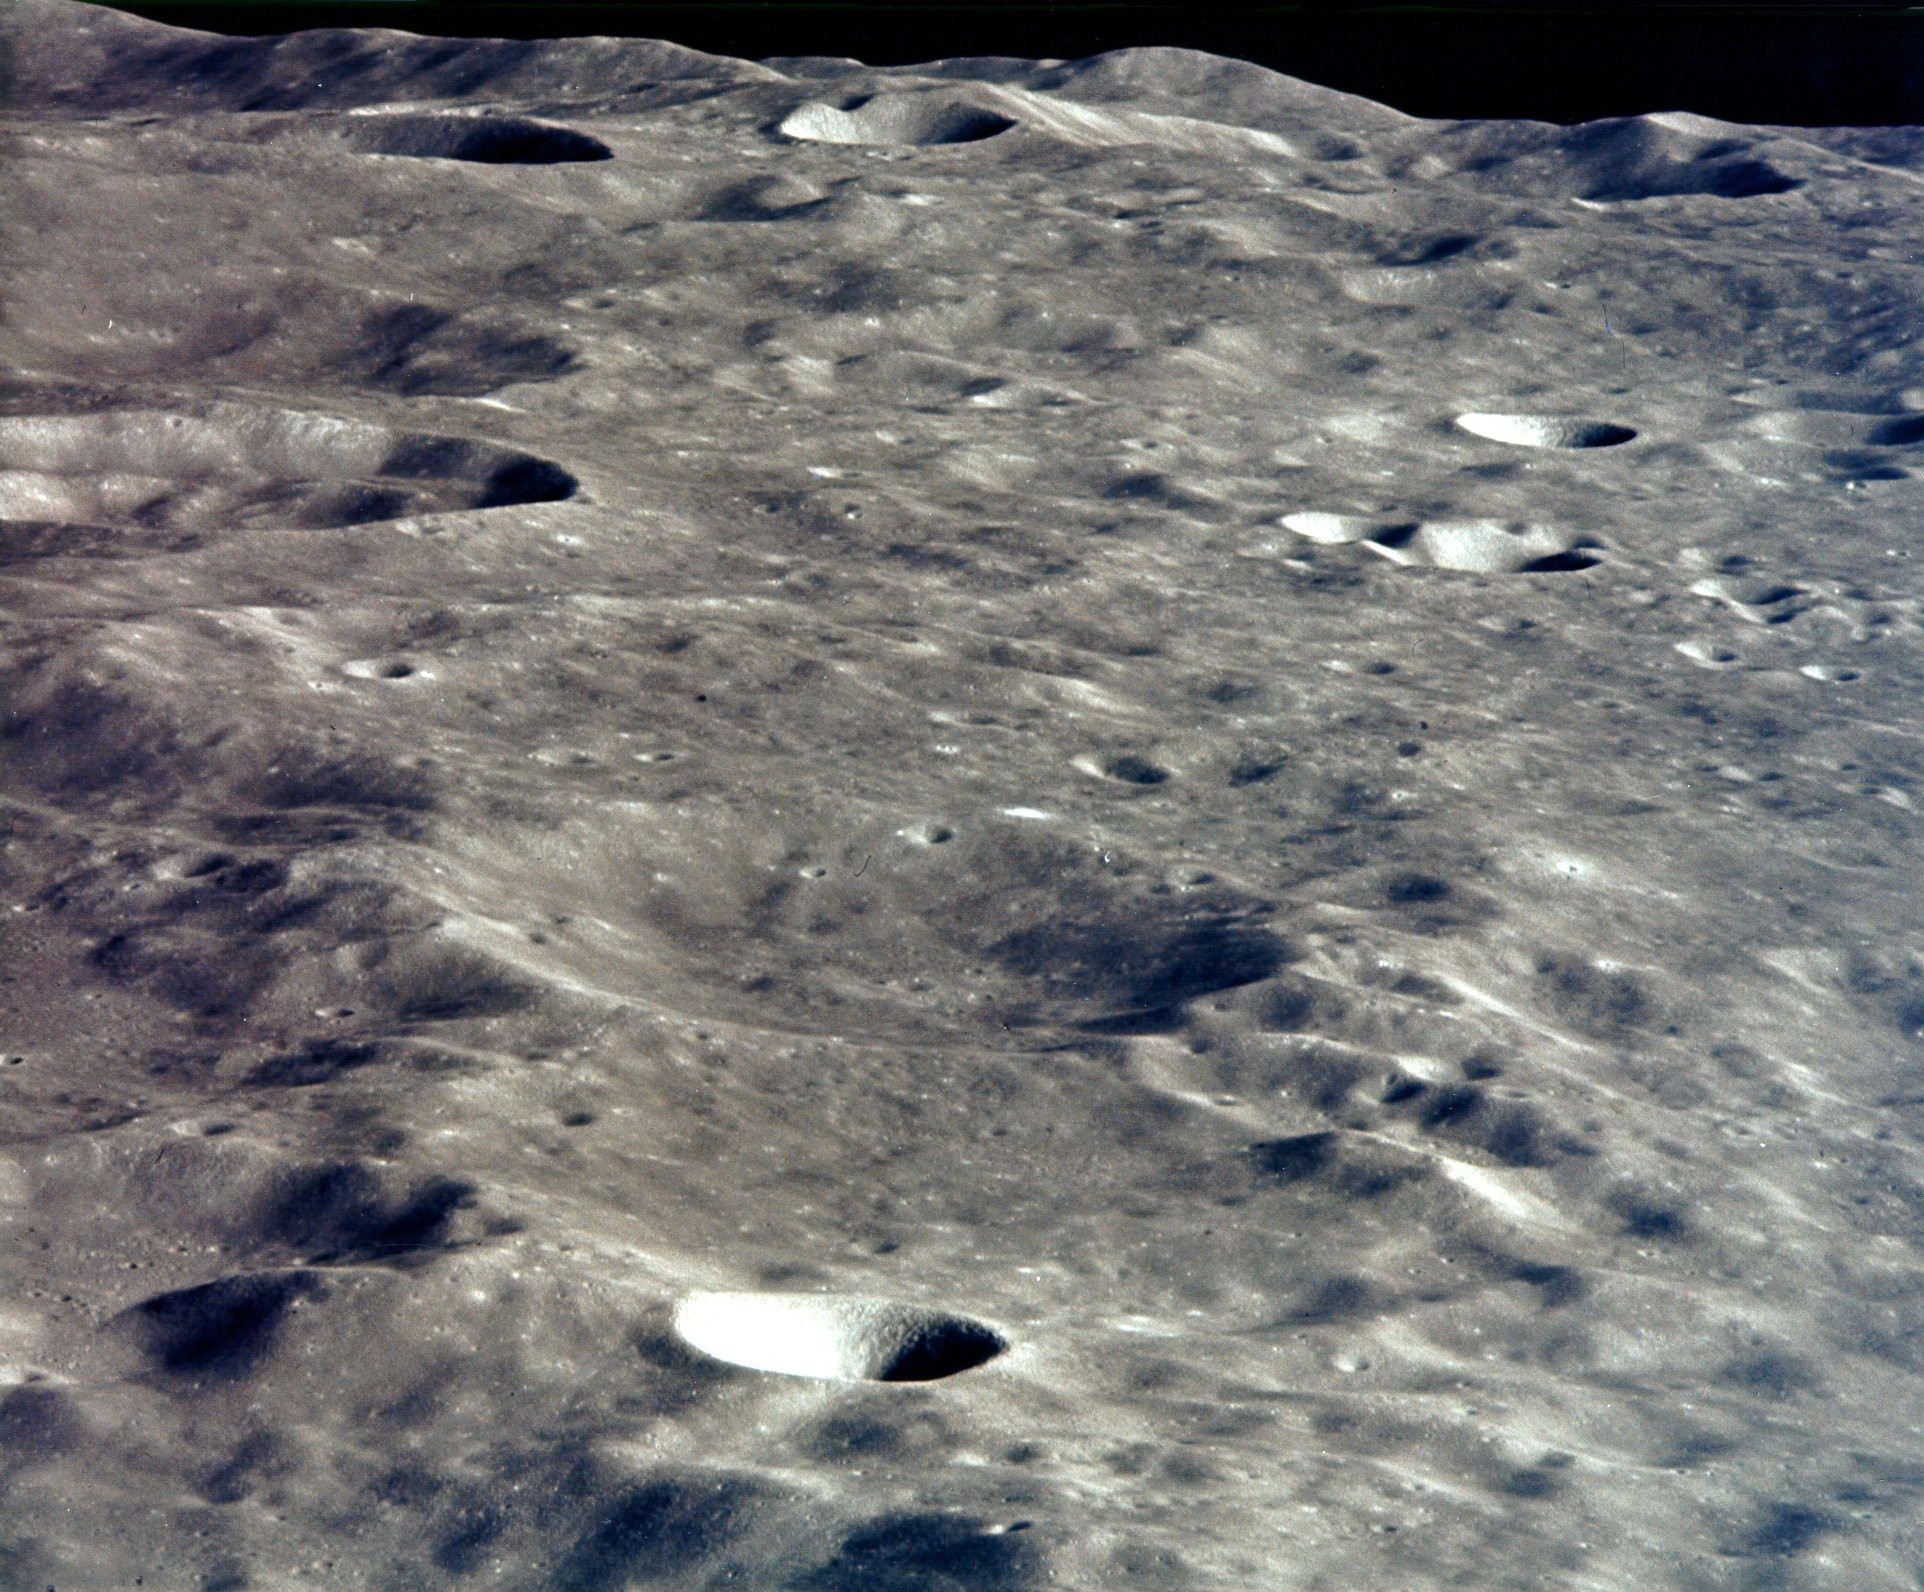 The two modules 'Snoopy' and 'Charlie Brown' successfully redocked above the far side of the Moon. Credit: NASA